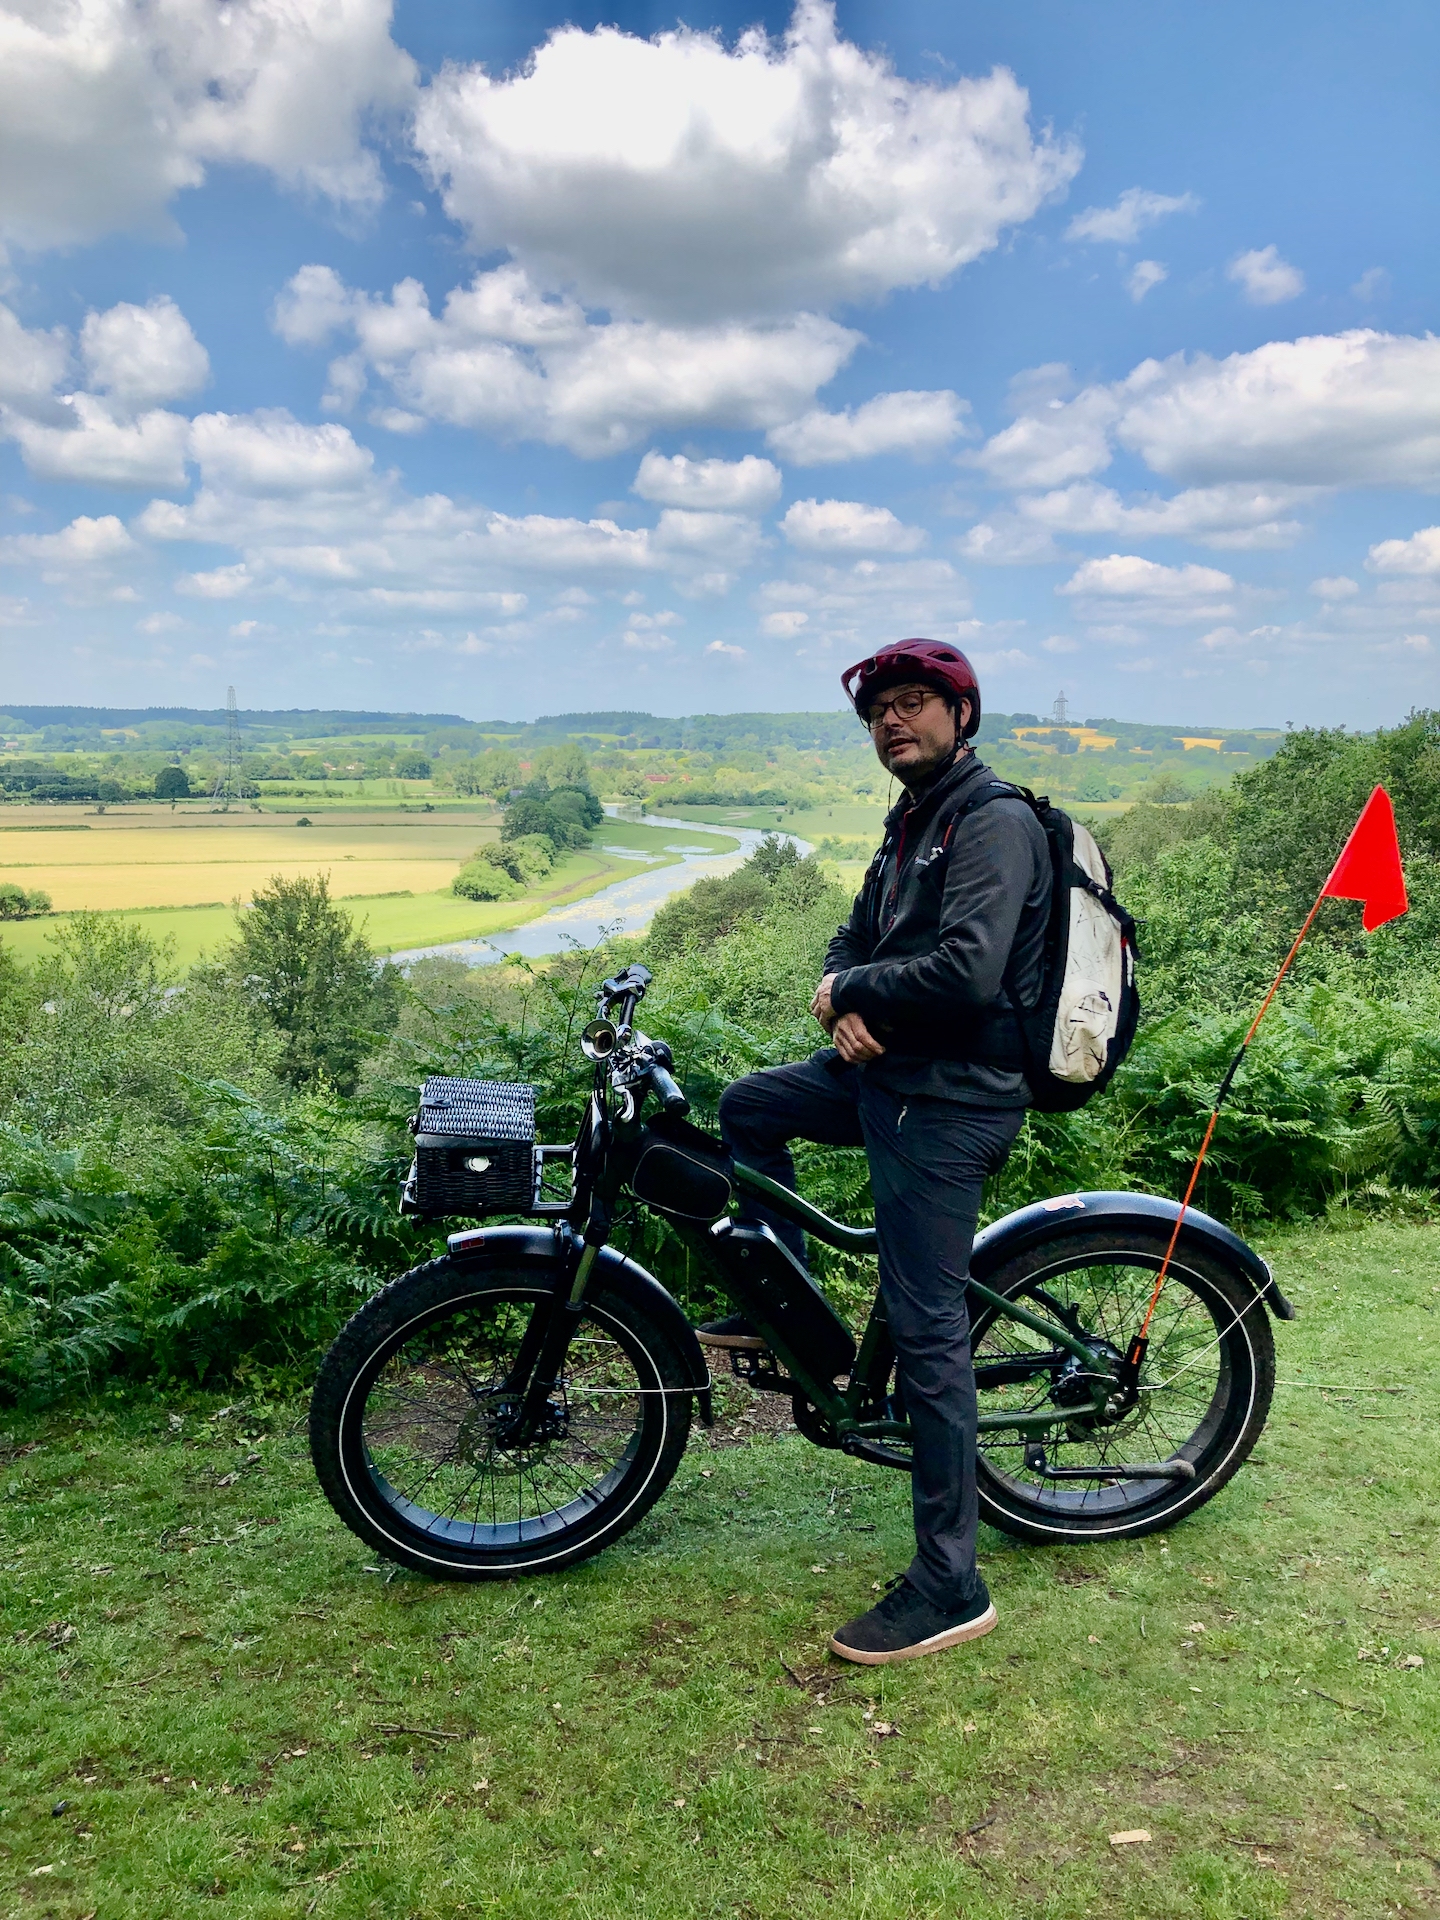 Electric bike ride views with Likie Bikie. Just one of the wonderful New Forest sights you'll see on the escorted 2 hour Explorer Ride